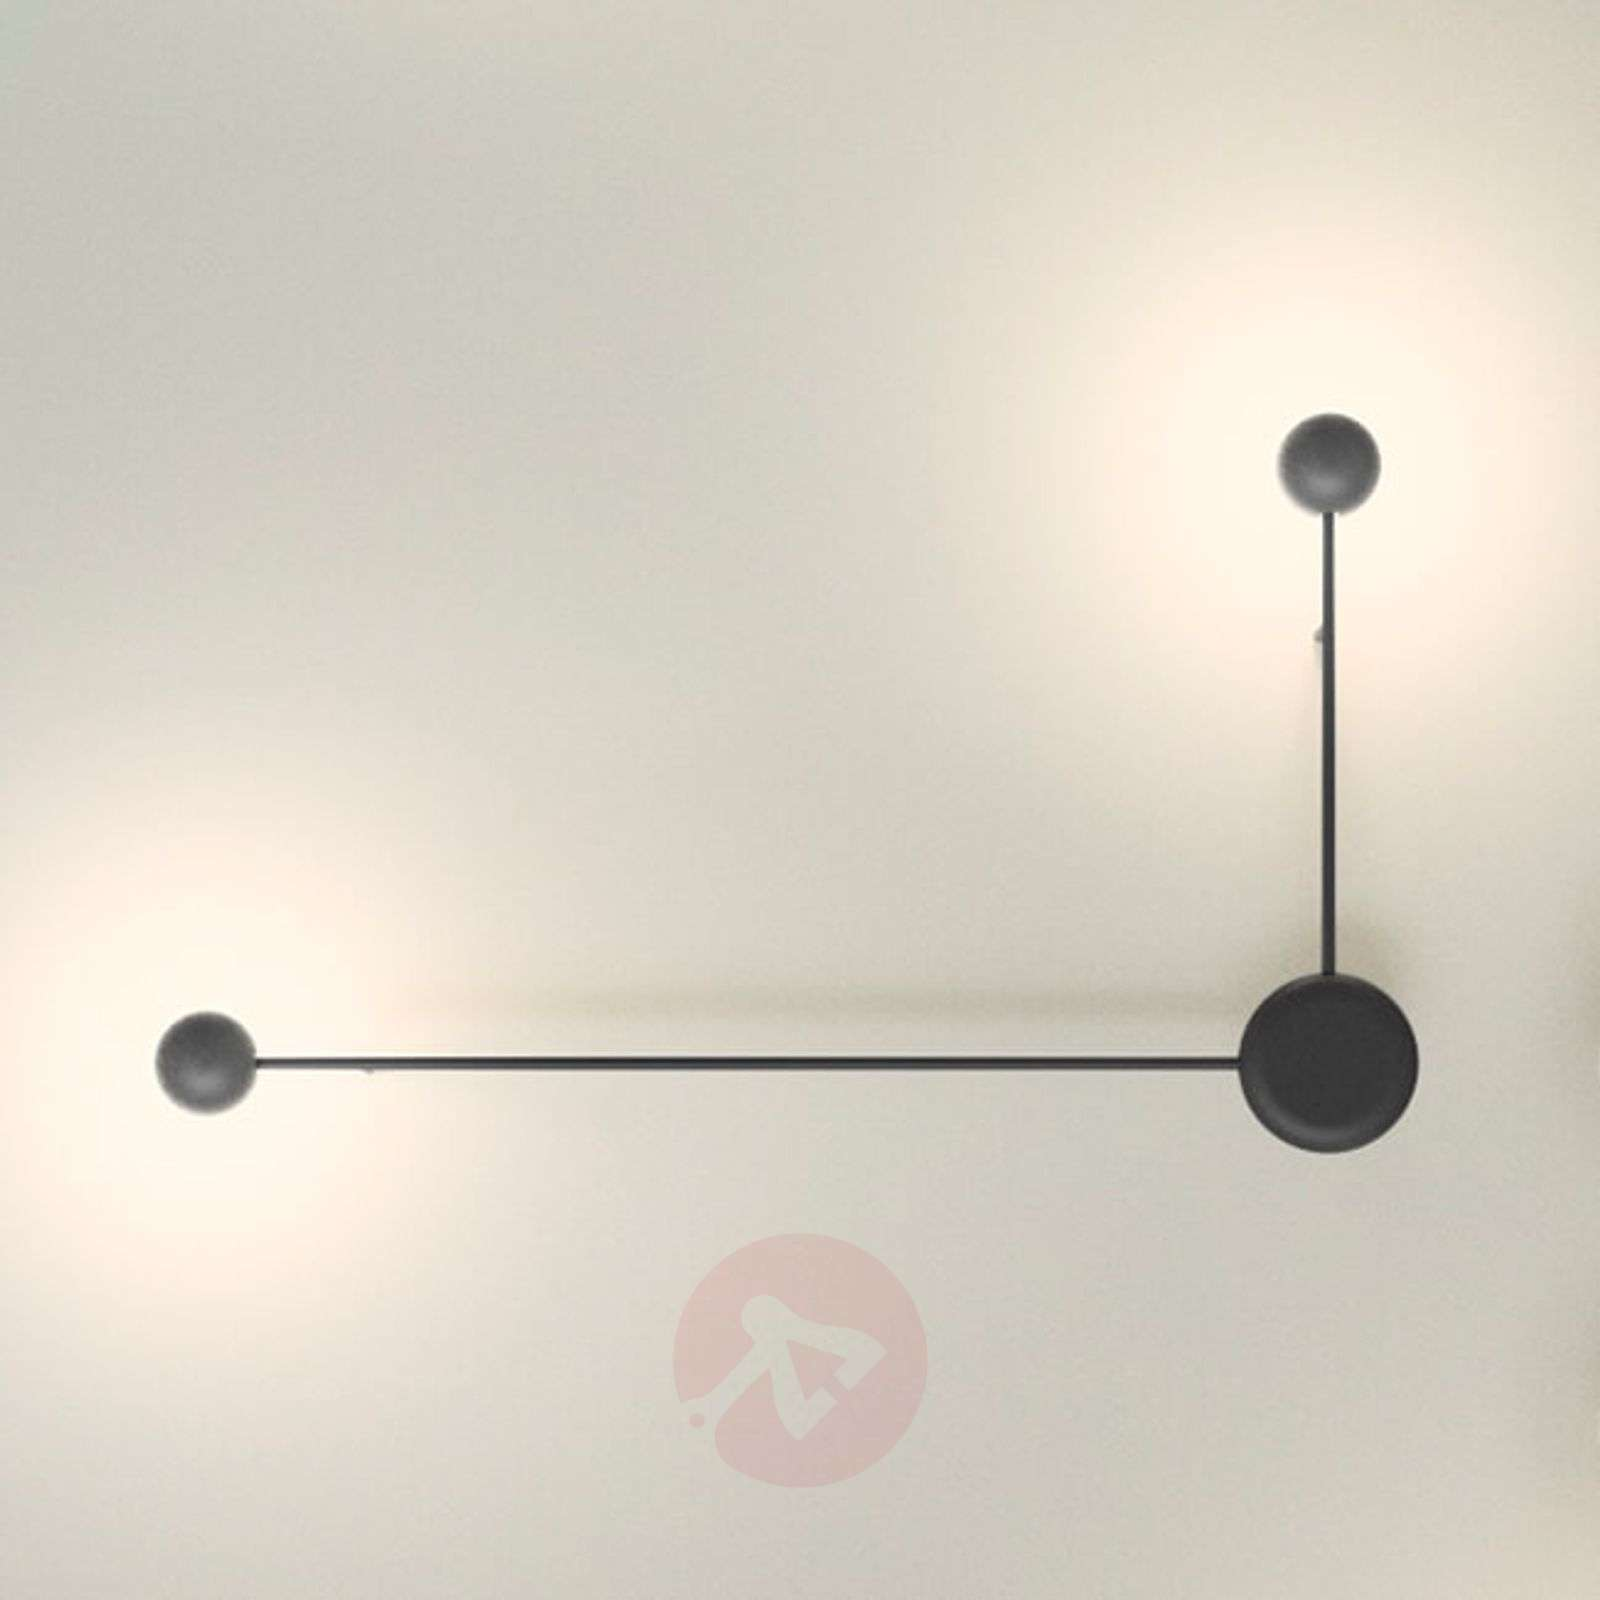 Applique LED Pin a 2 punti luce-9515107-02